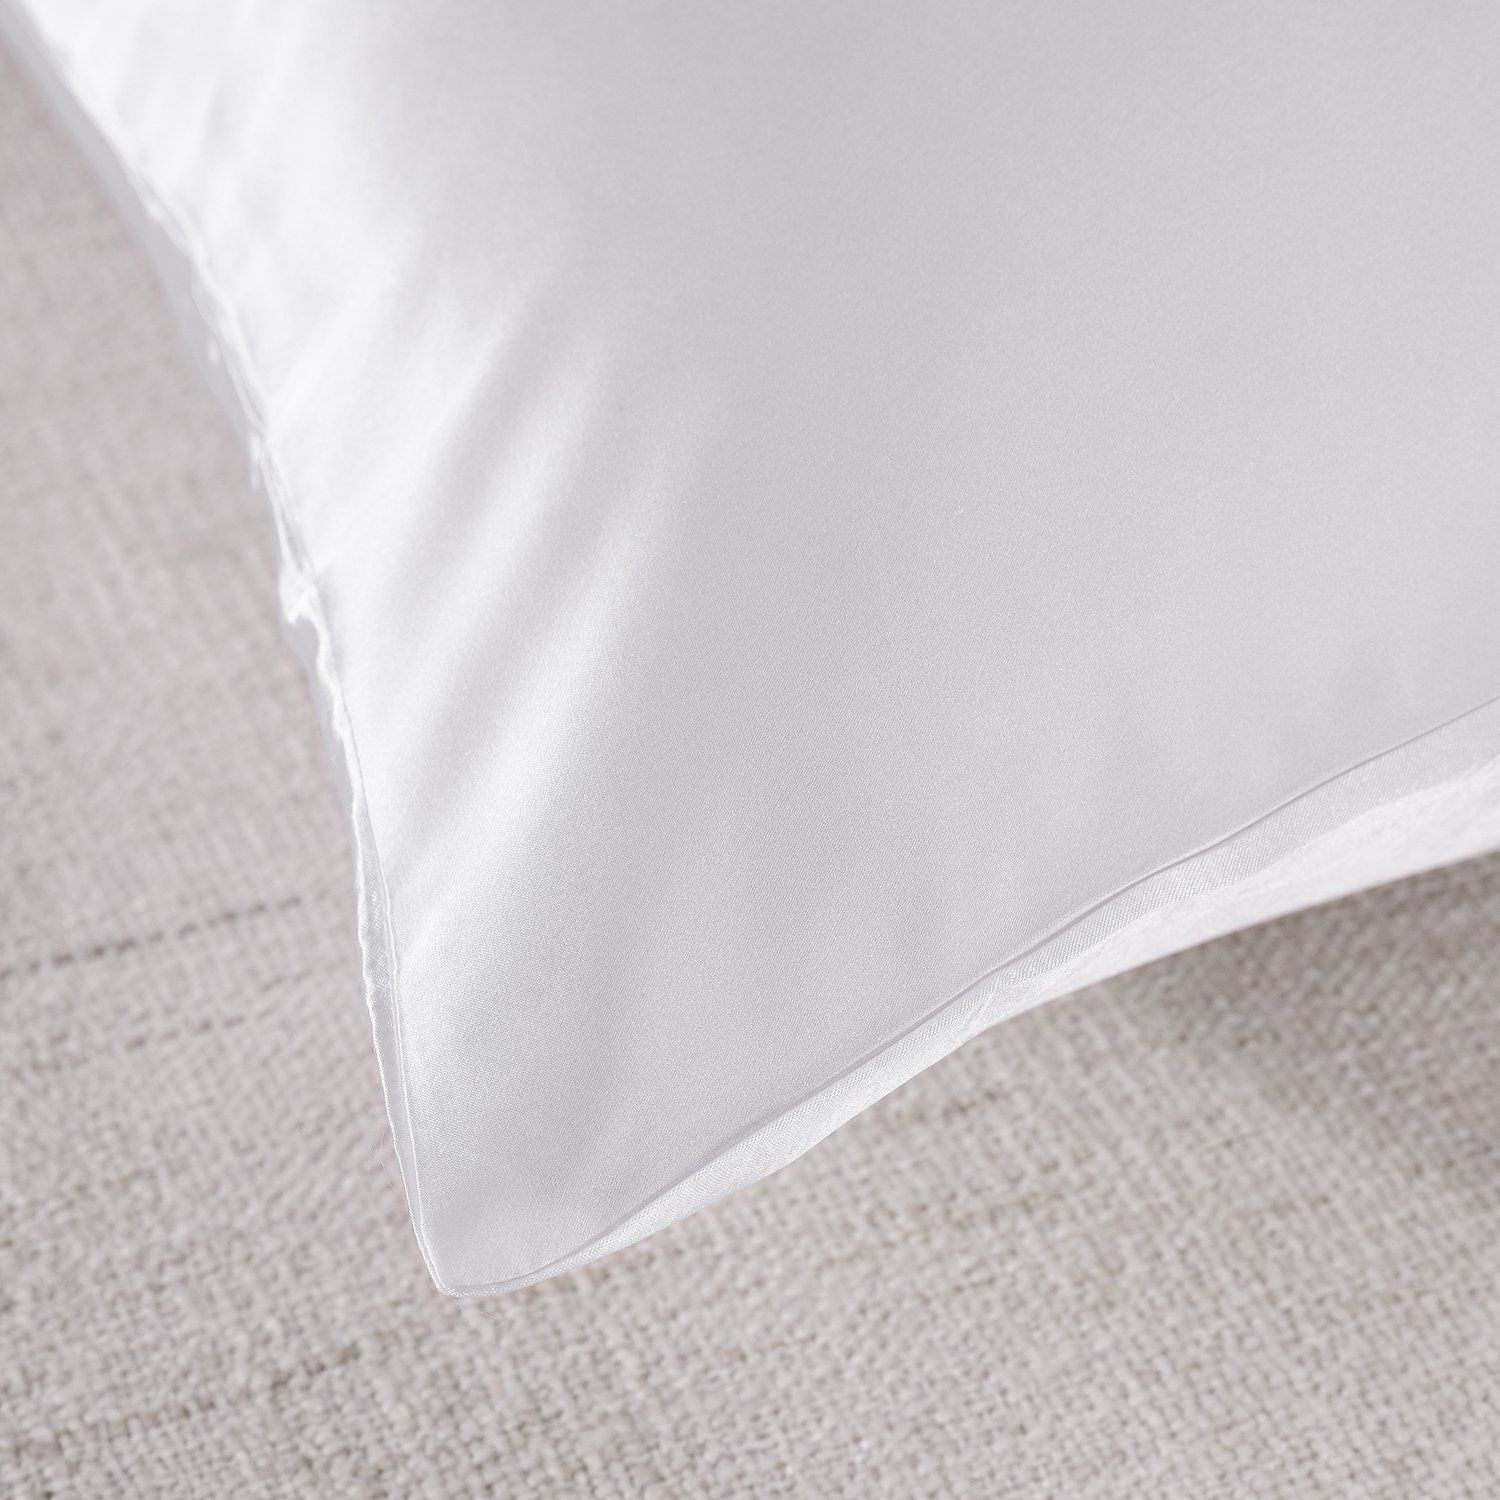 Royal-Comfort-Mulberry-Soft-Silk-Hypoallergenic-Pillowcase-Twin-Pack-51-x-76cm thumbnail 43